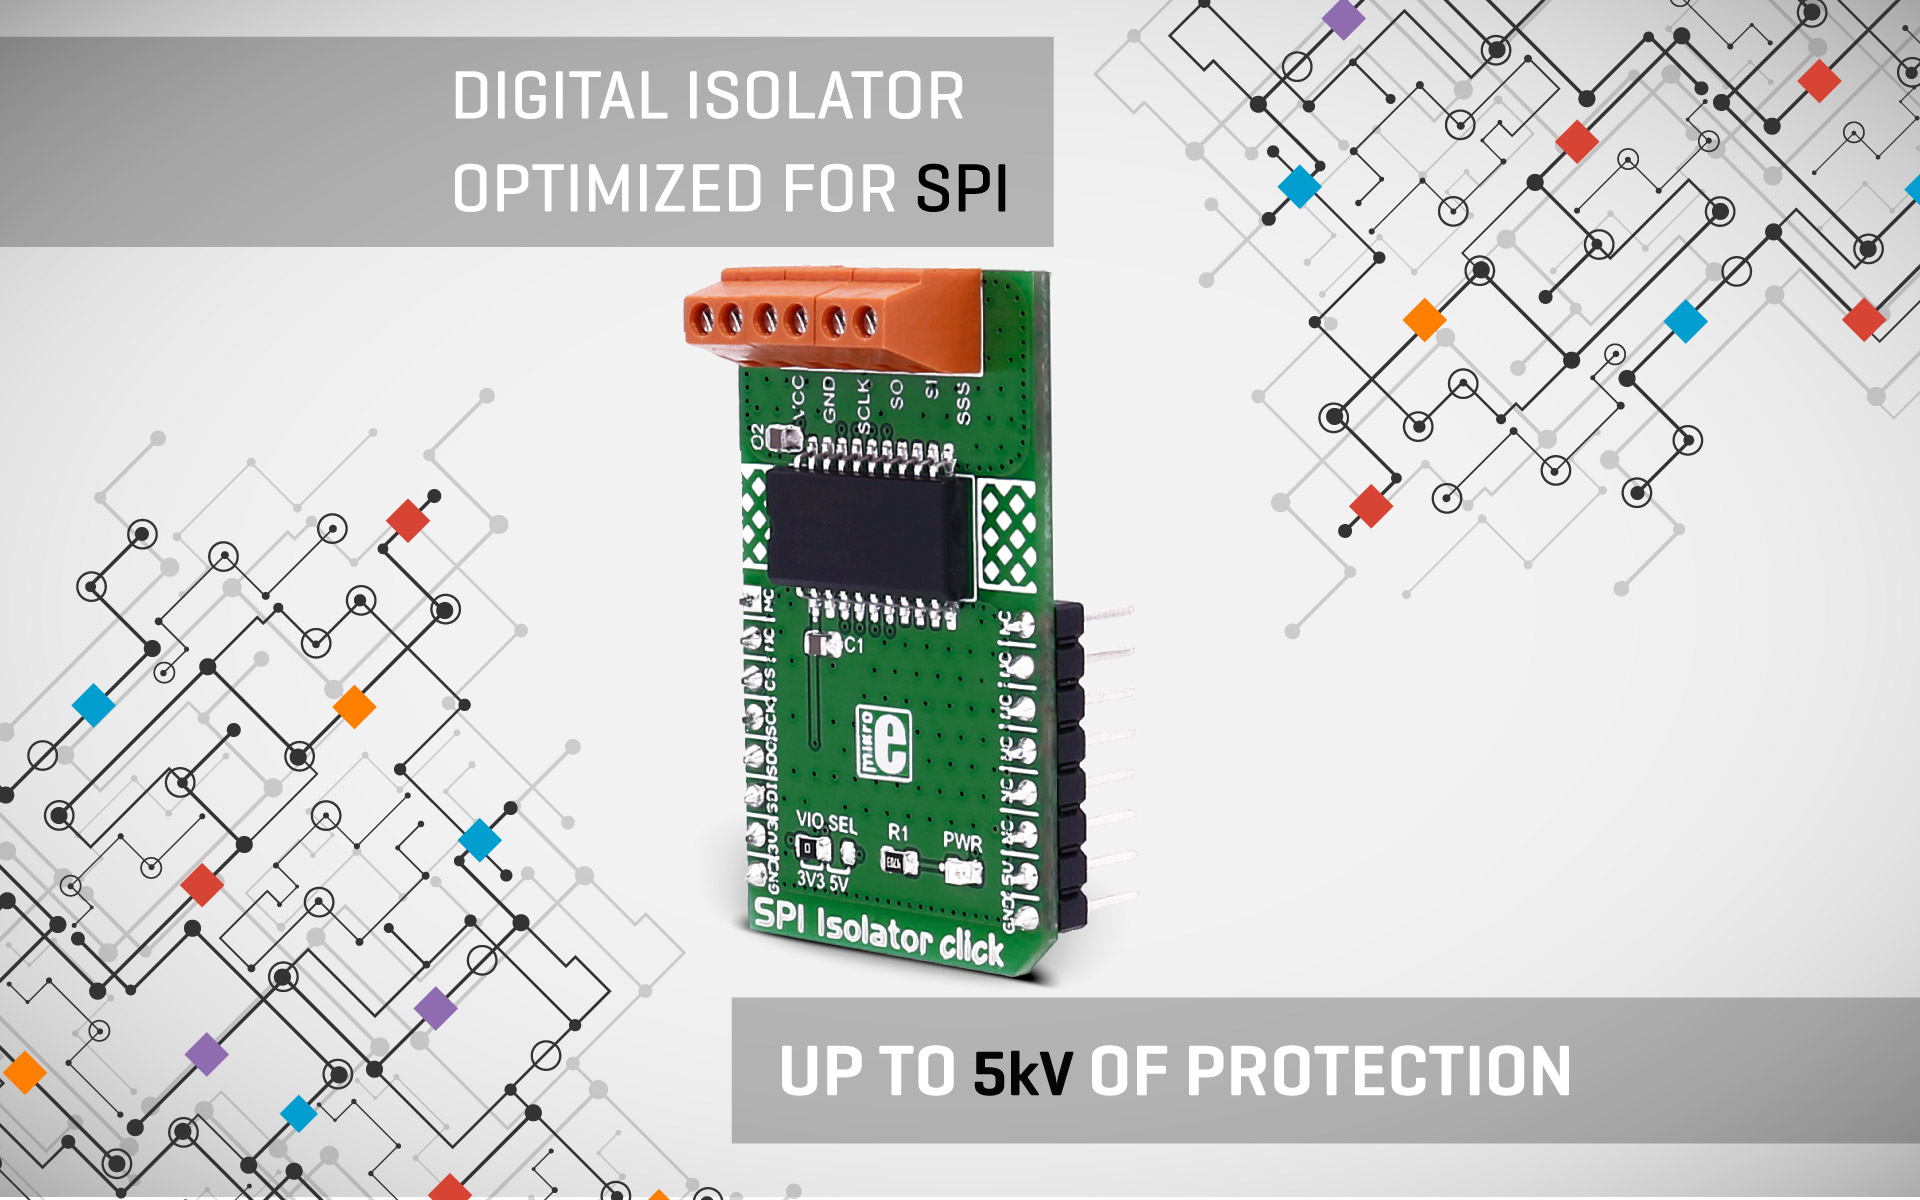 SPI Isolator click - a digital isolator optimized for SPI